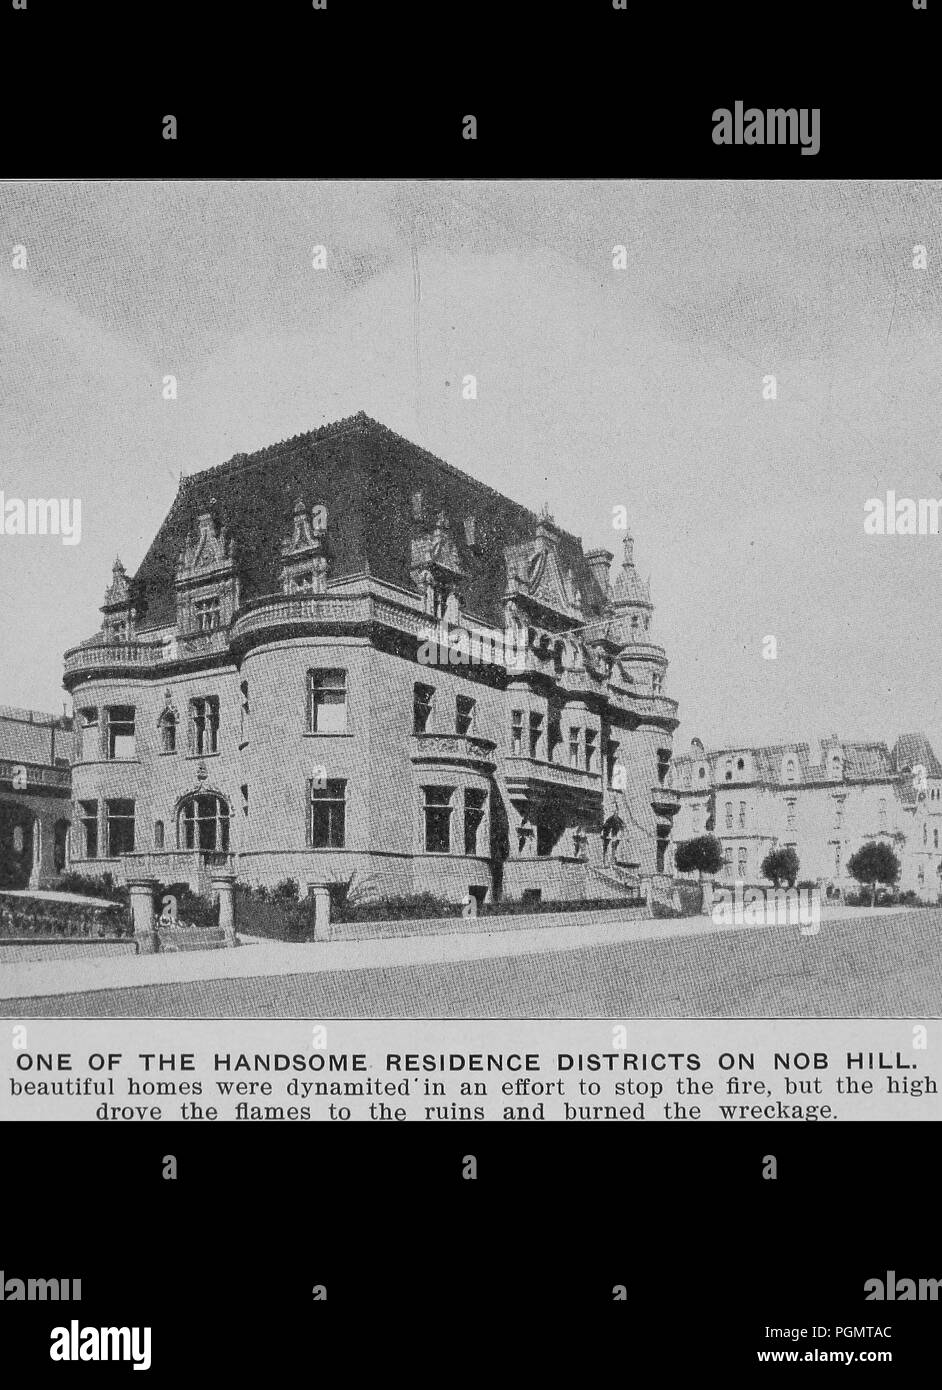 Black and white photograph of a French neoclassical style mansion that was dynamited in an effort to stop the fire that raced through San Francisco's Nob Hill, and surrounding areas, during California's 1906 earthquake and great fire, 1906. Courtesy Internet Archive. () - Stock Image